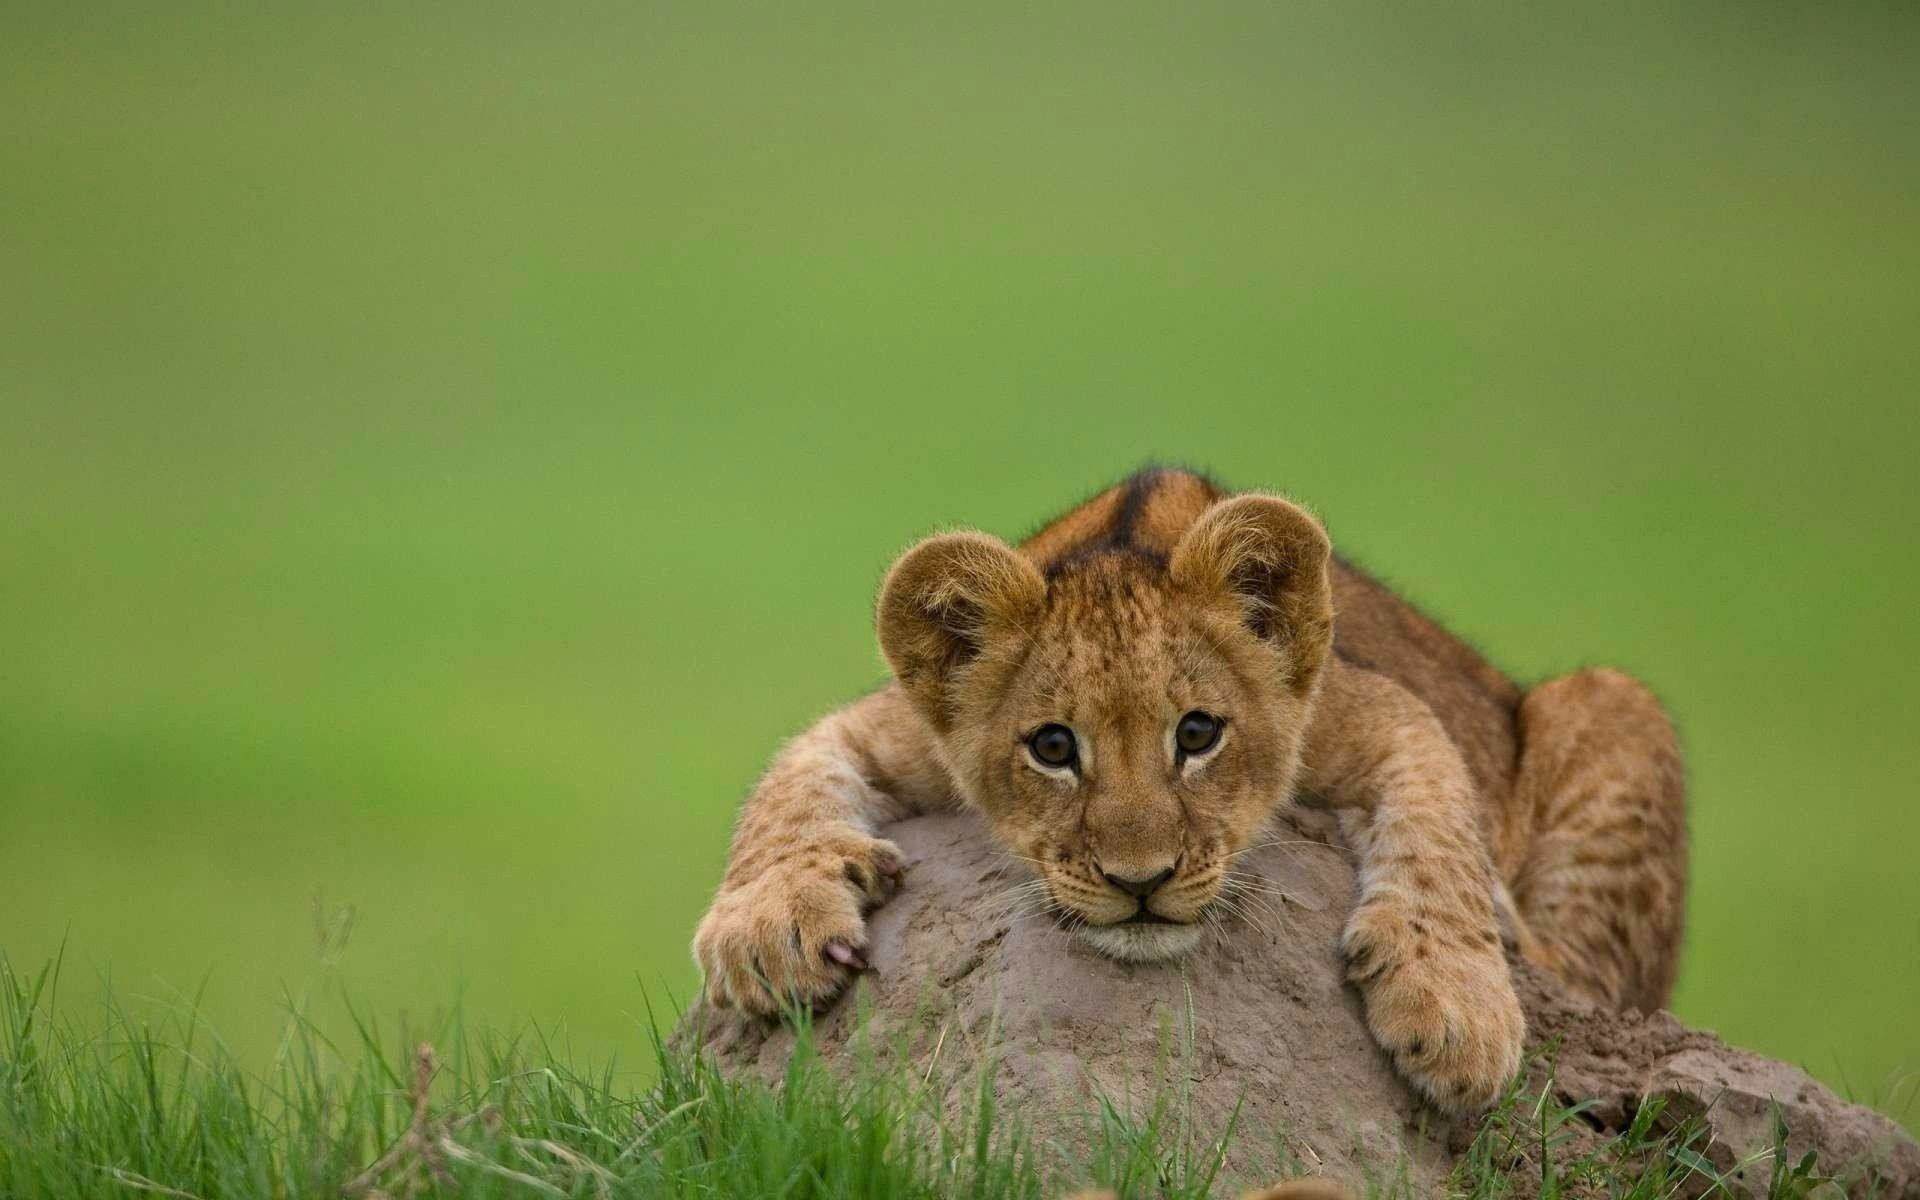 1920x1200 Lion cubs Wallpaper (36286251) - Fanpop